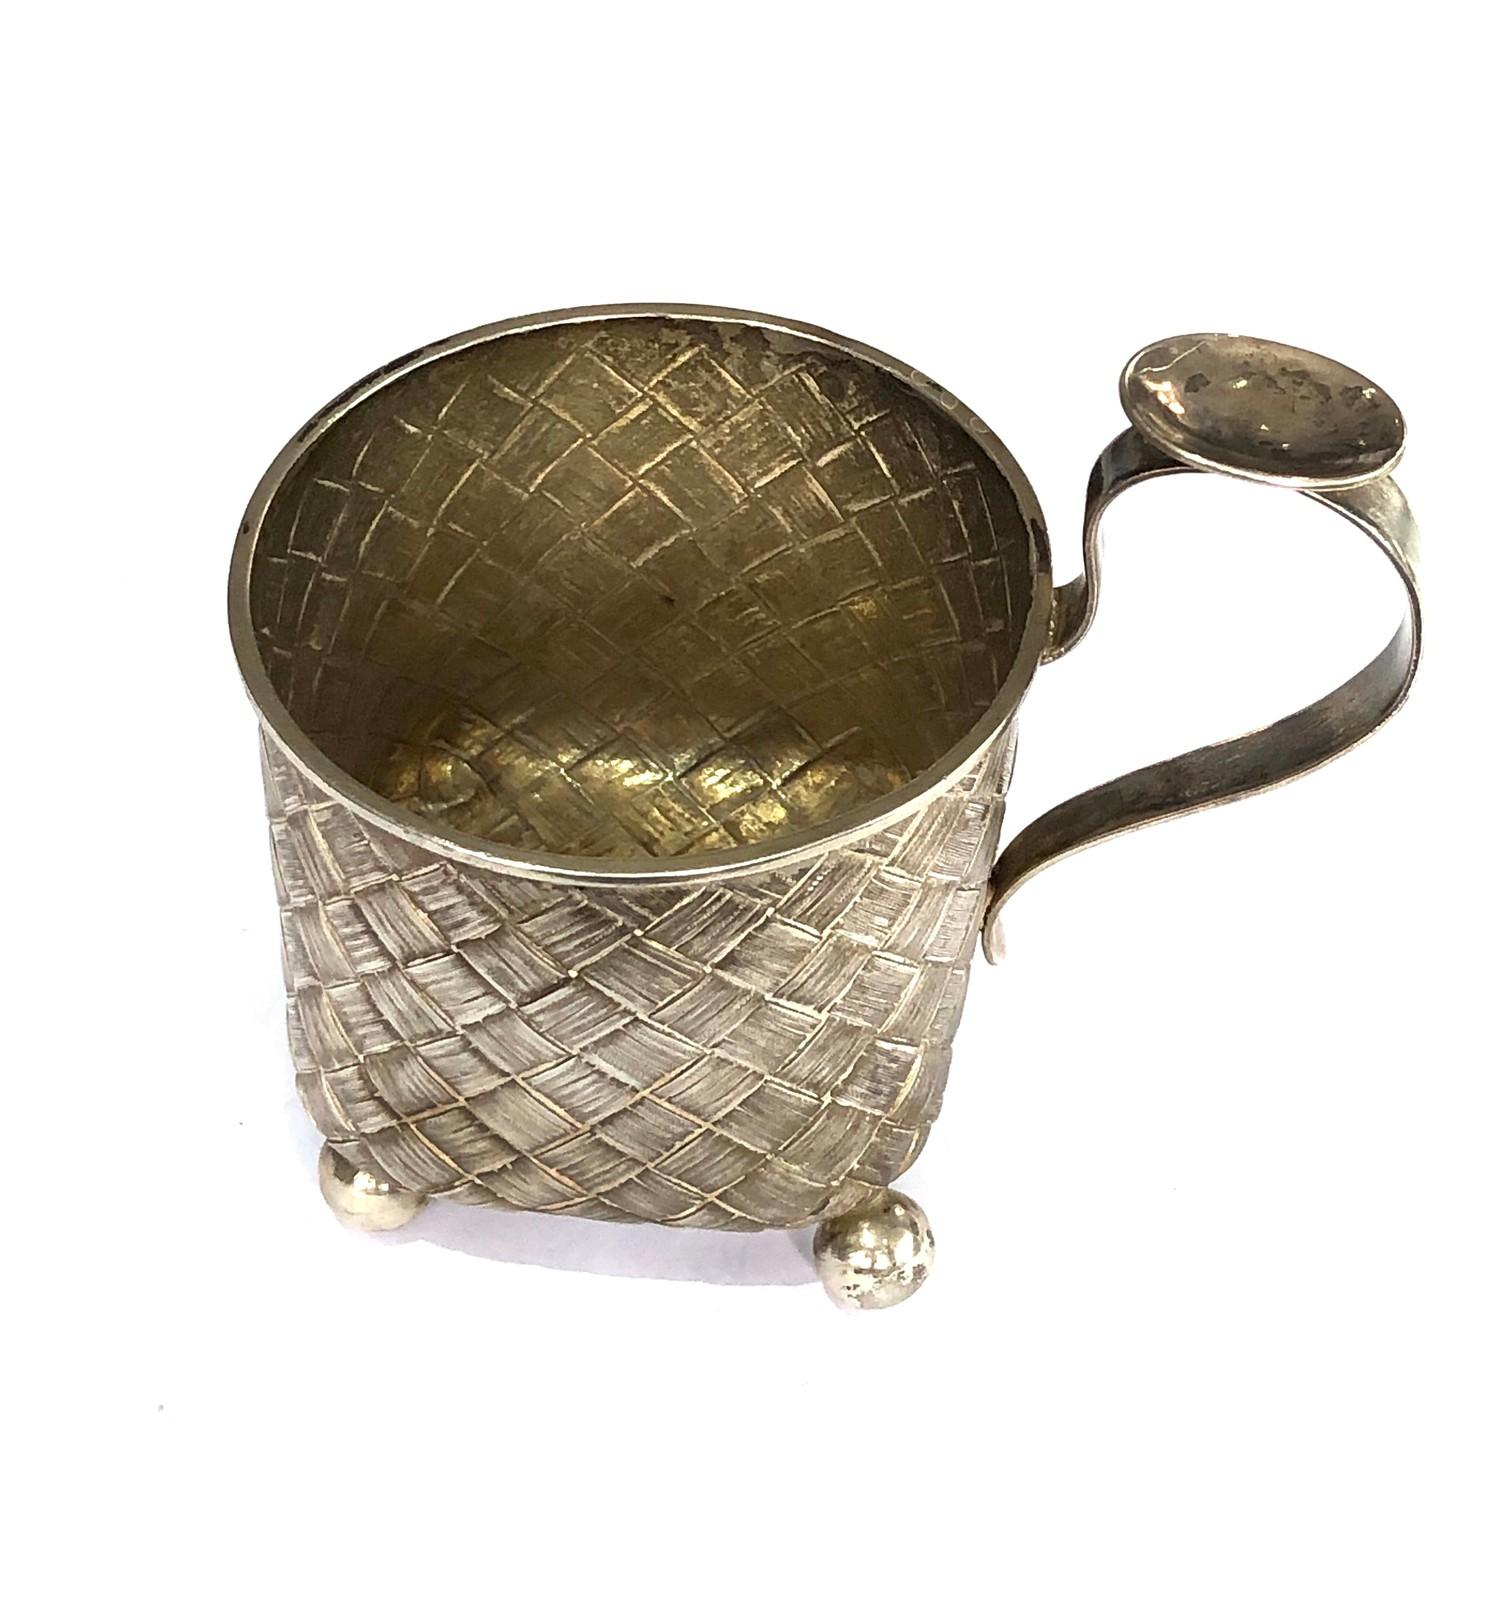 Antique 1877 Russian silver cup lattice work design measures approx height 10cm cup dia 7.5cm full - Image 2 of 7